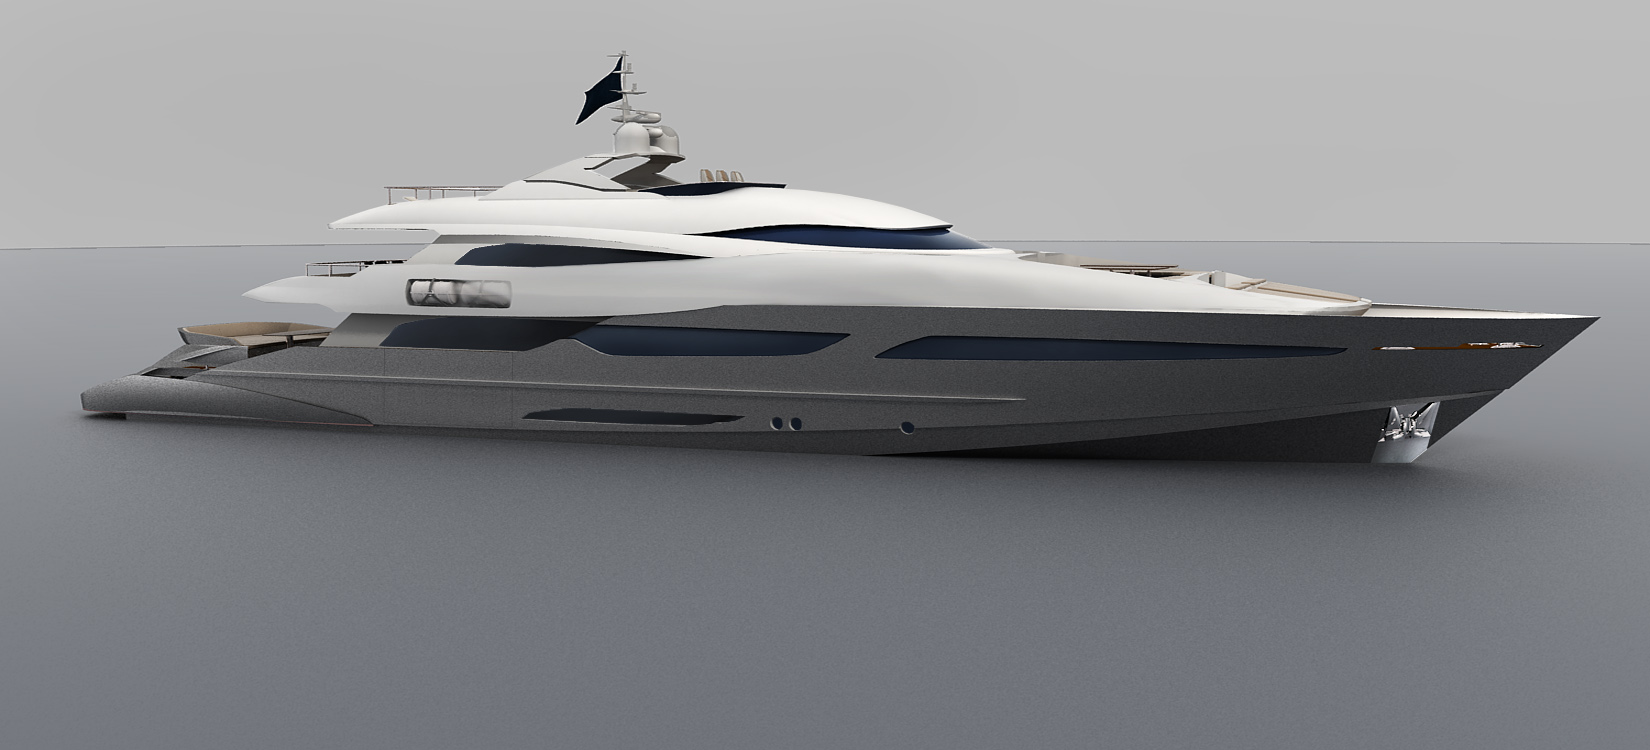 super yacht 650 quadro by nedship